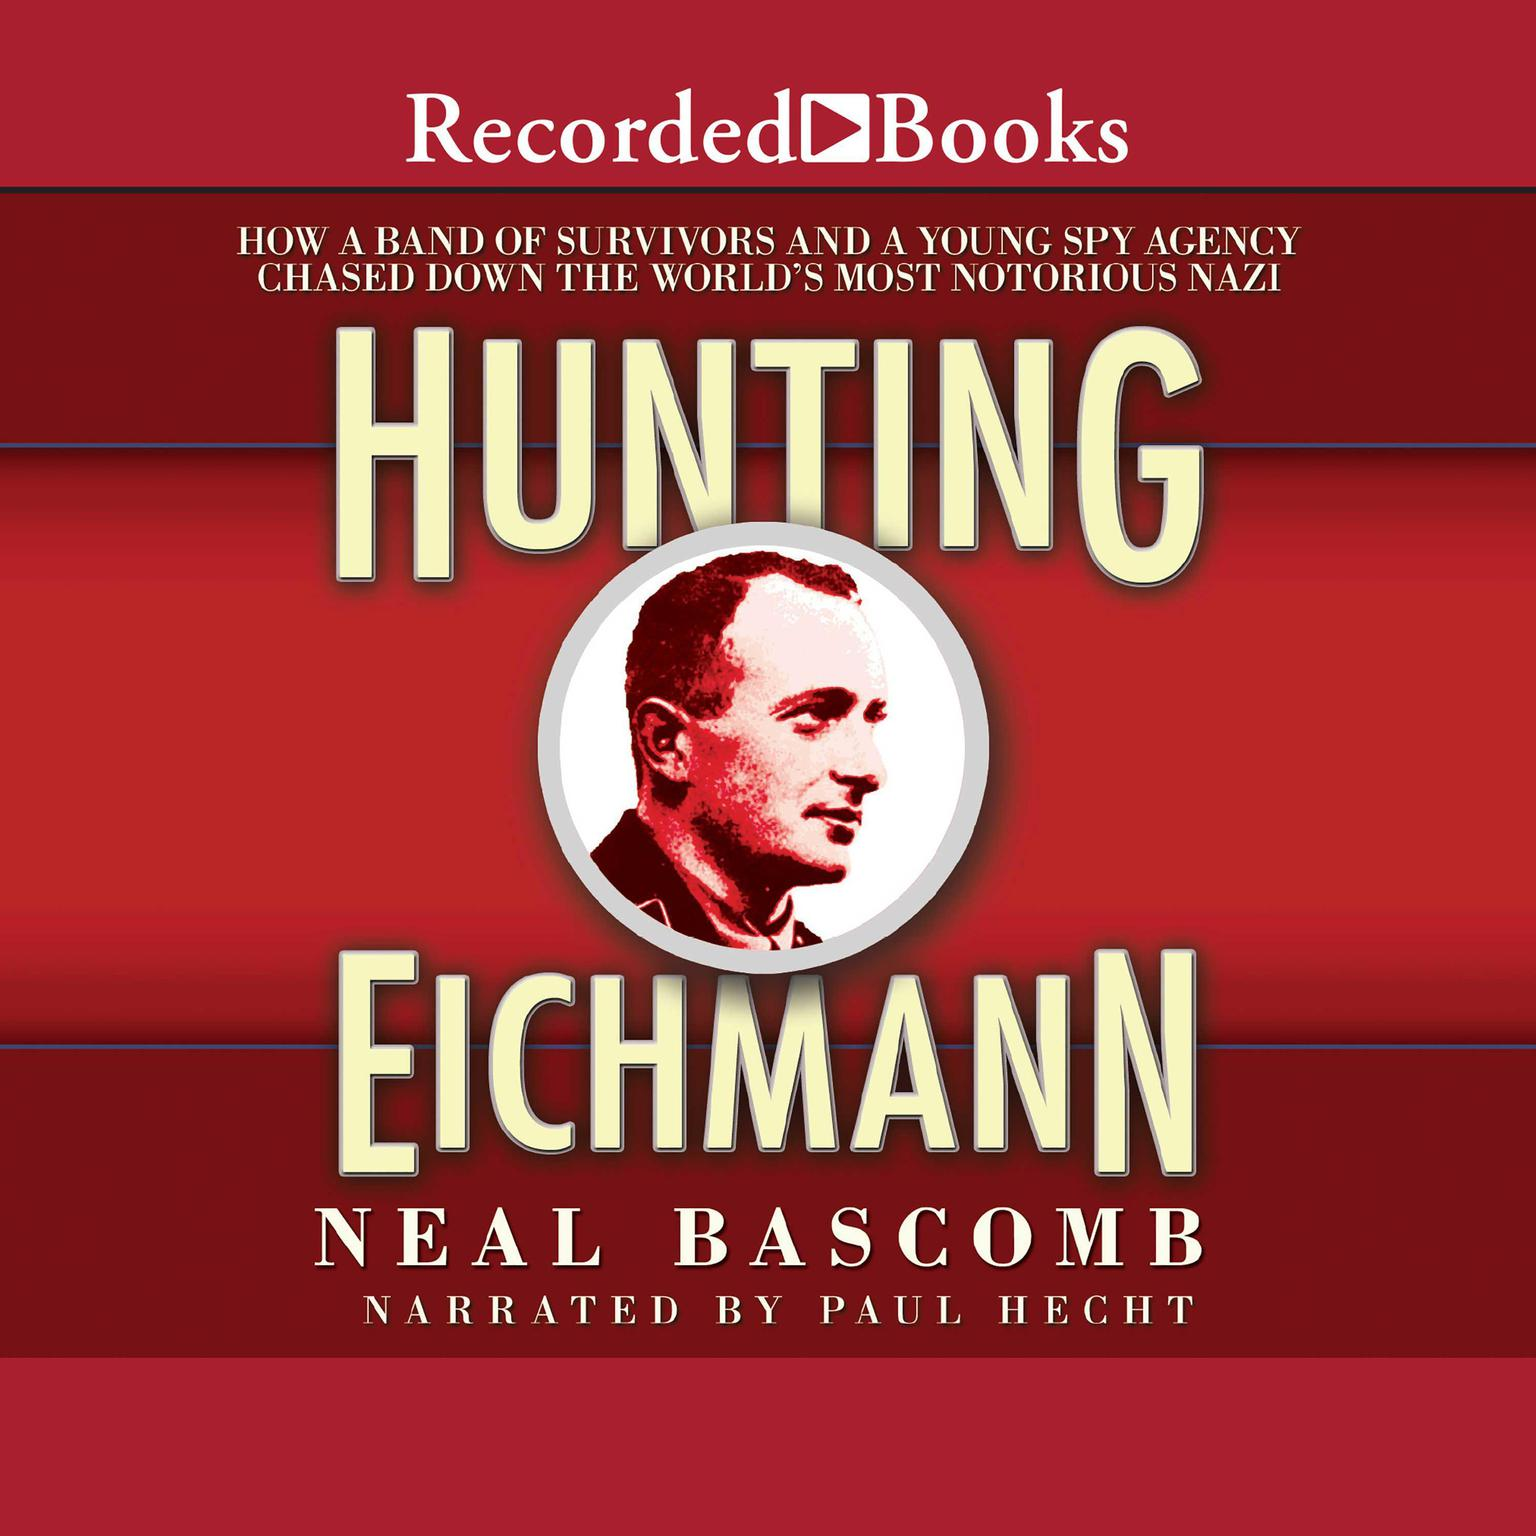 Printable Hunting Eichmann: How a Band of Survivors and a Young Spy Agency Chased Down the World's Most Notorious Nazi Audiobook Cover Art